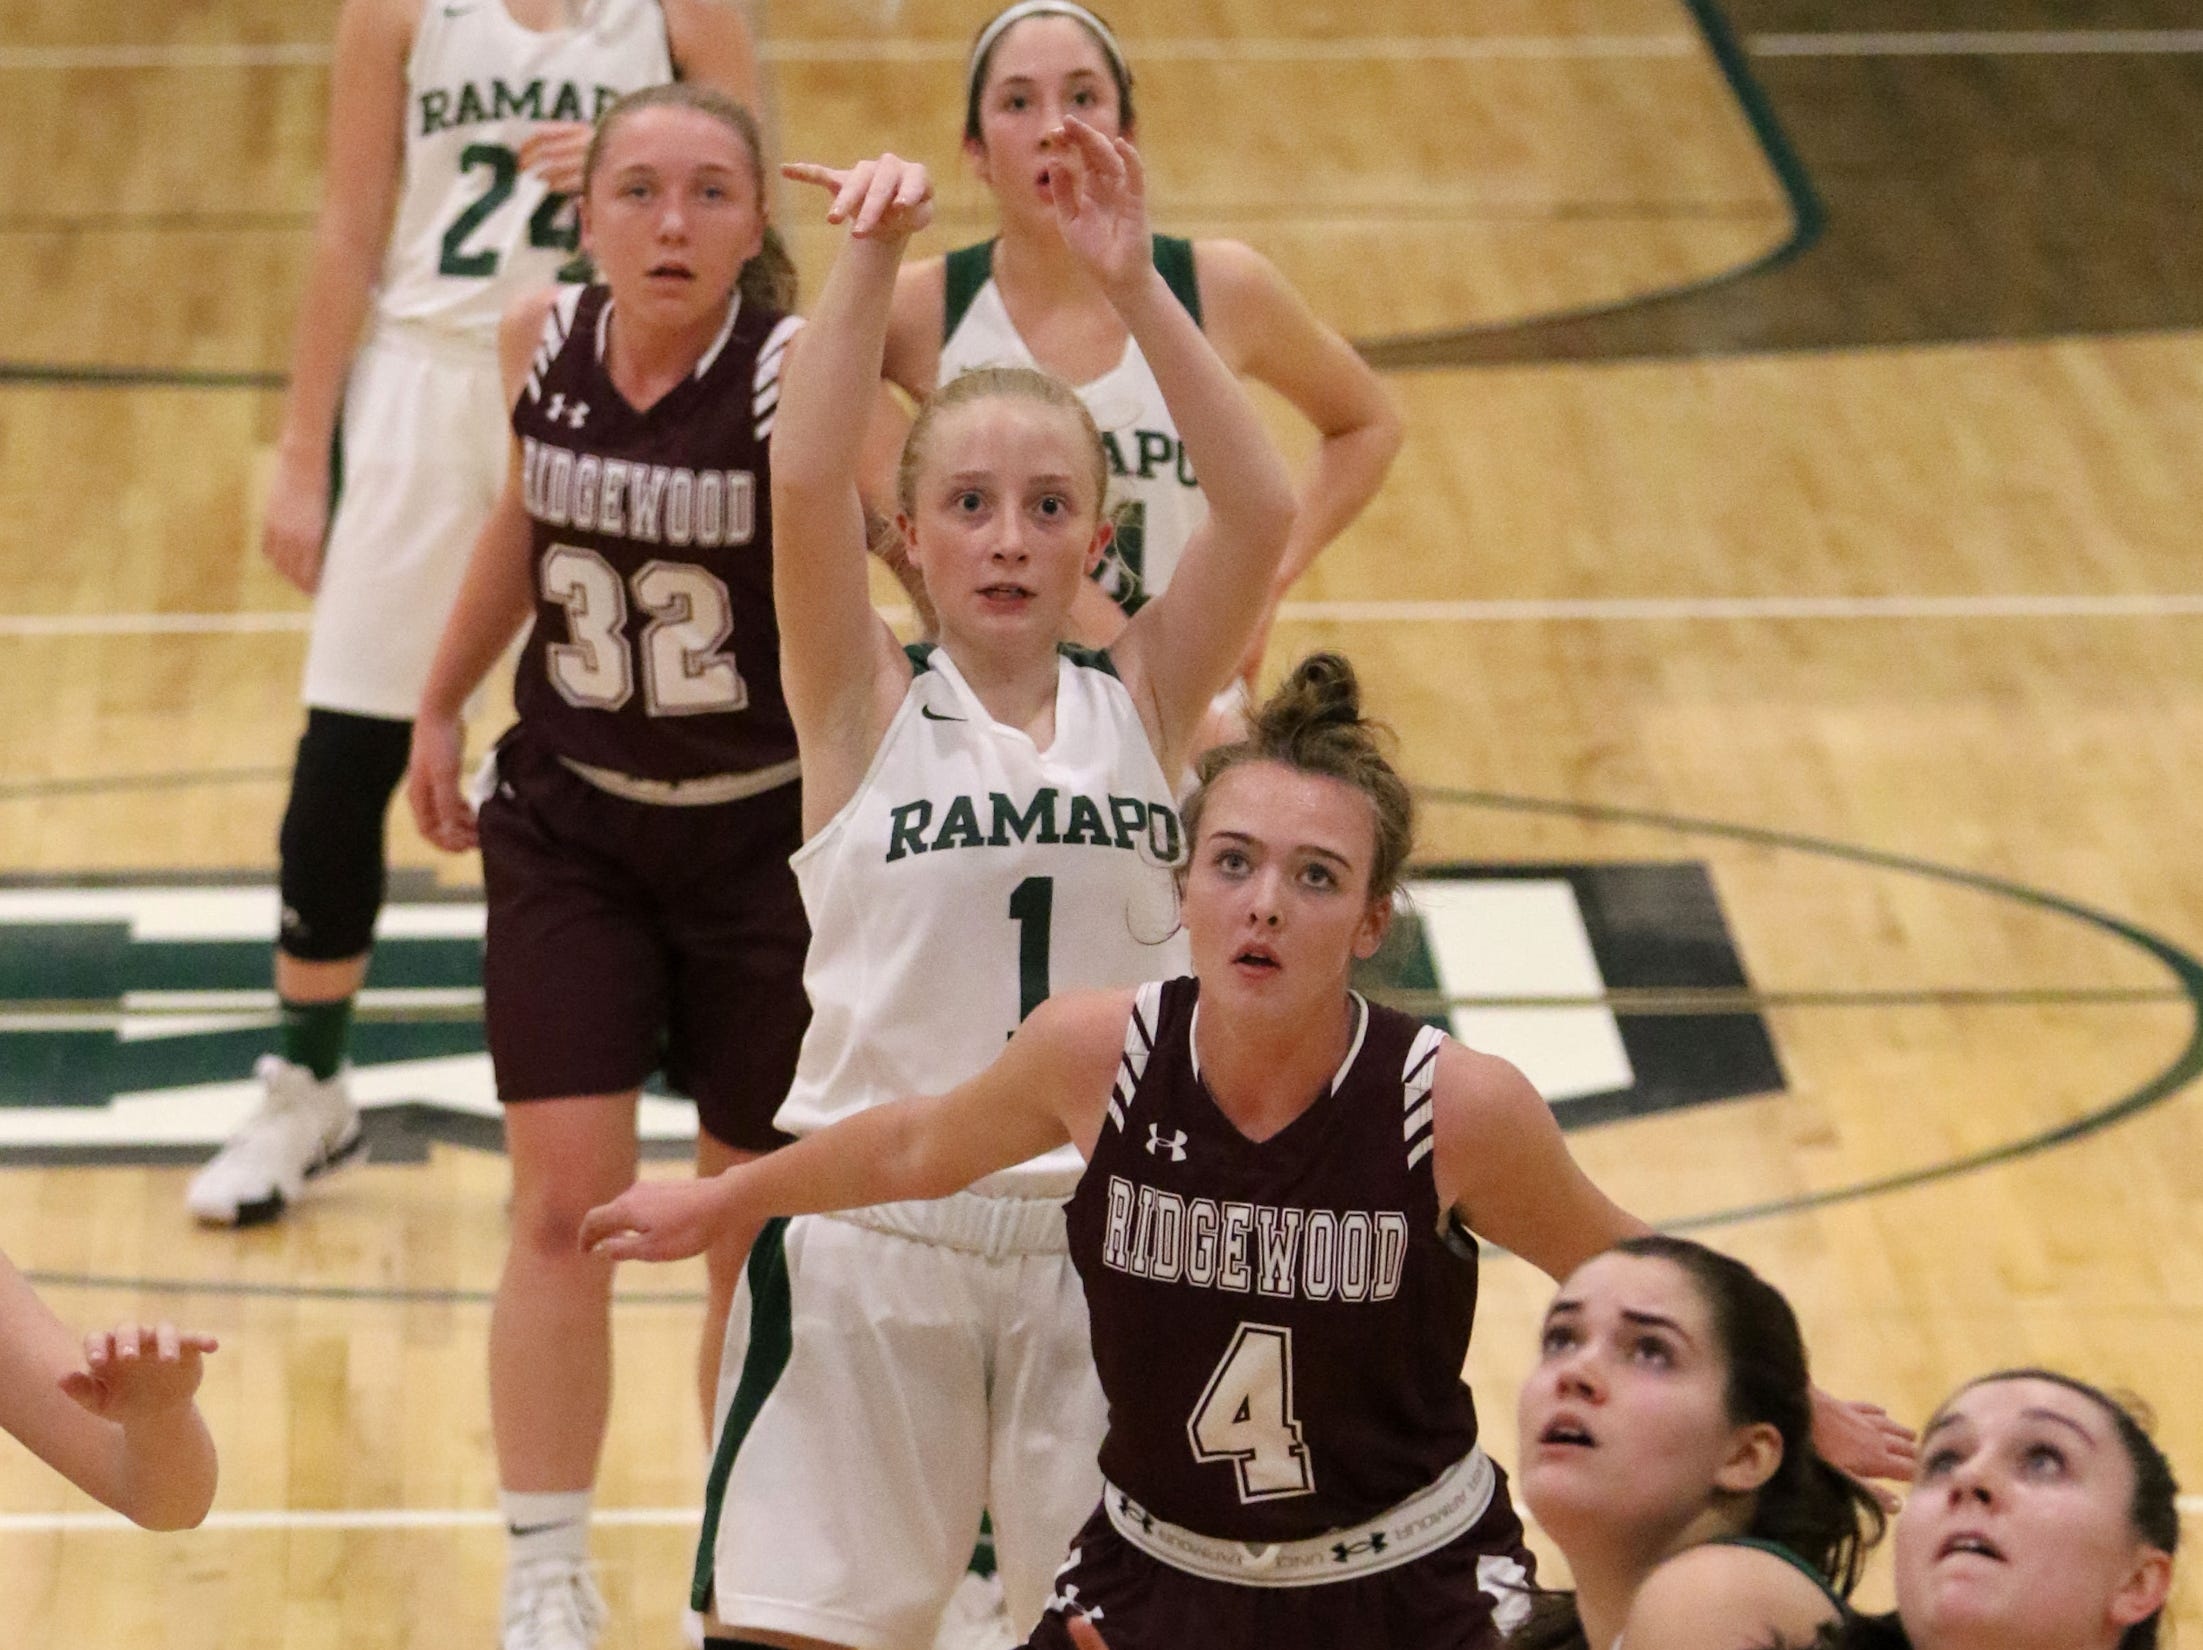 Nowak Savannah, of Ramapo, eyes the basket to see if her shot will be good.  Her shot went off the rim but The Raiders won anyway, 42-36. Thursday, January 10, 2019